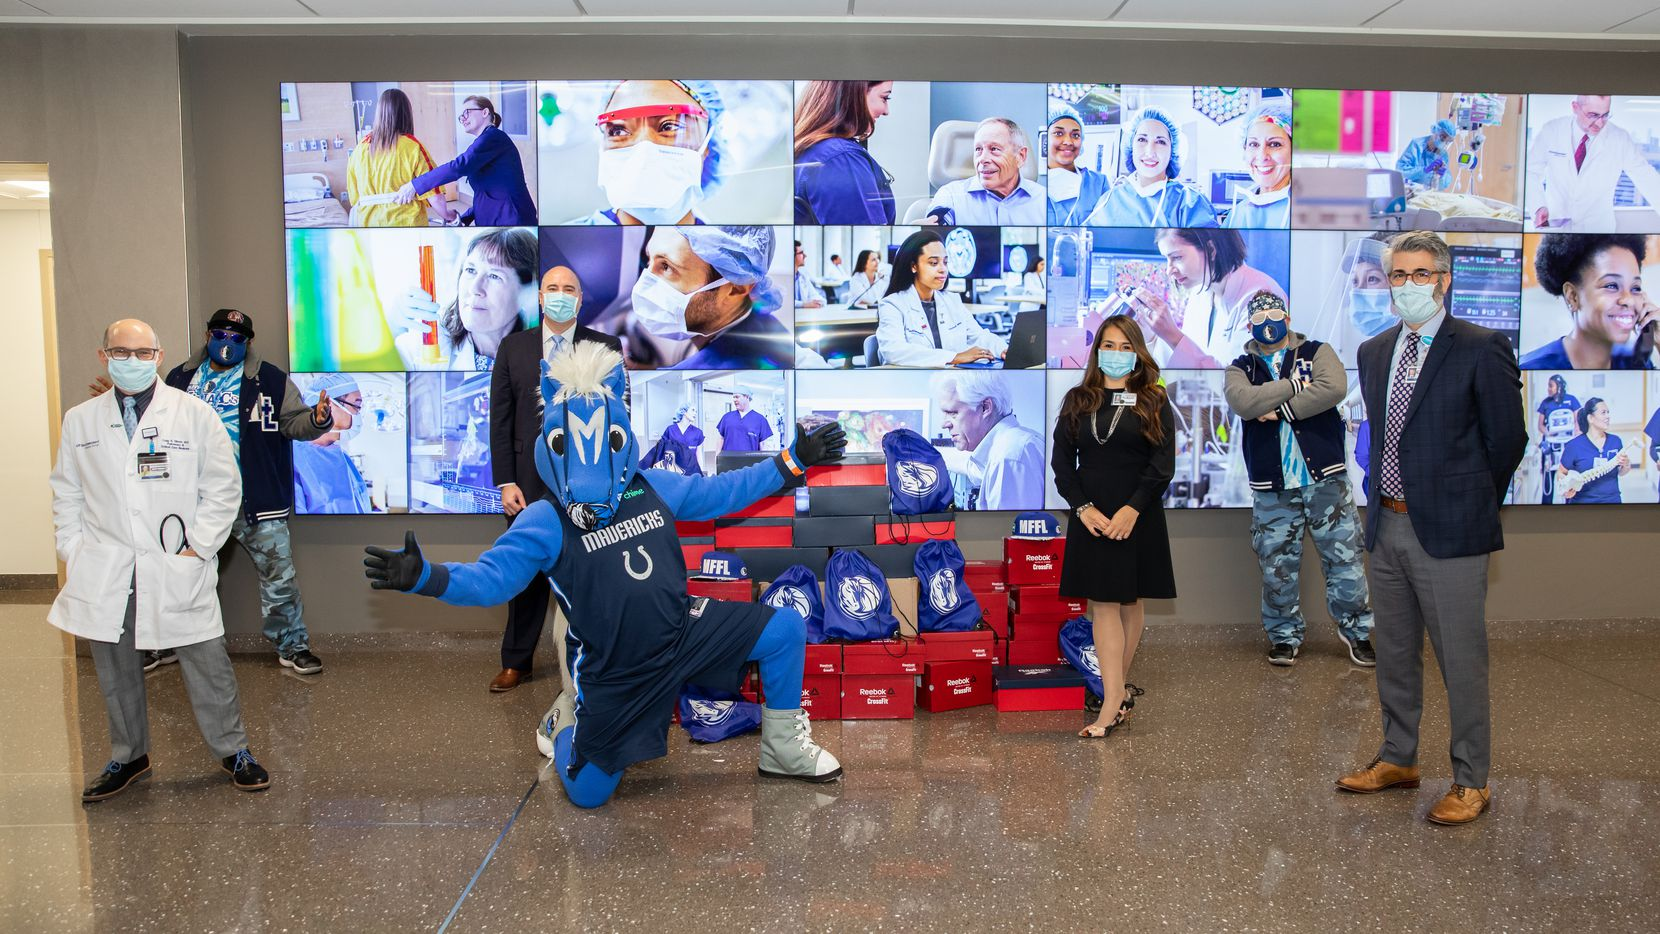 Dallas Mavericks guard Josh Richardson donates 40 pairs of tennis shoes to the medical frontline workers at the Dallas-based UT Southwestern Medical Center.